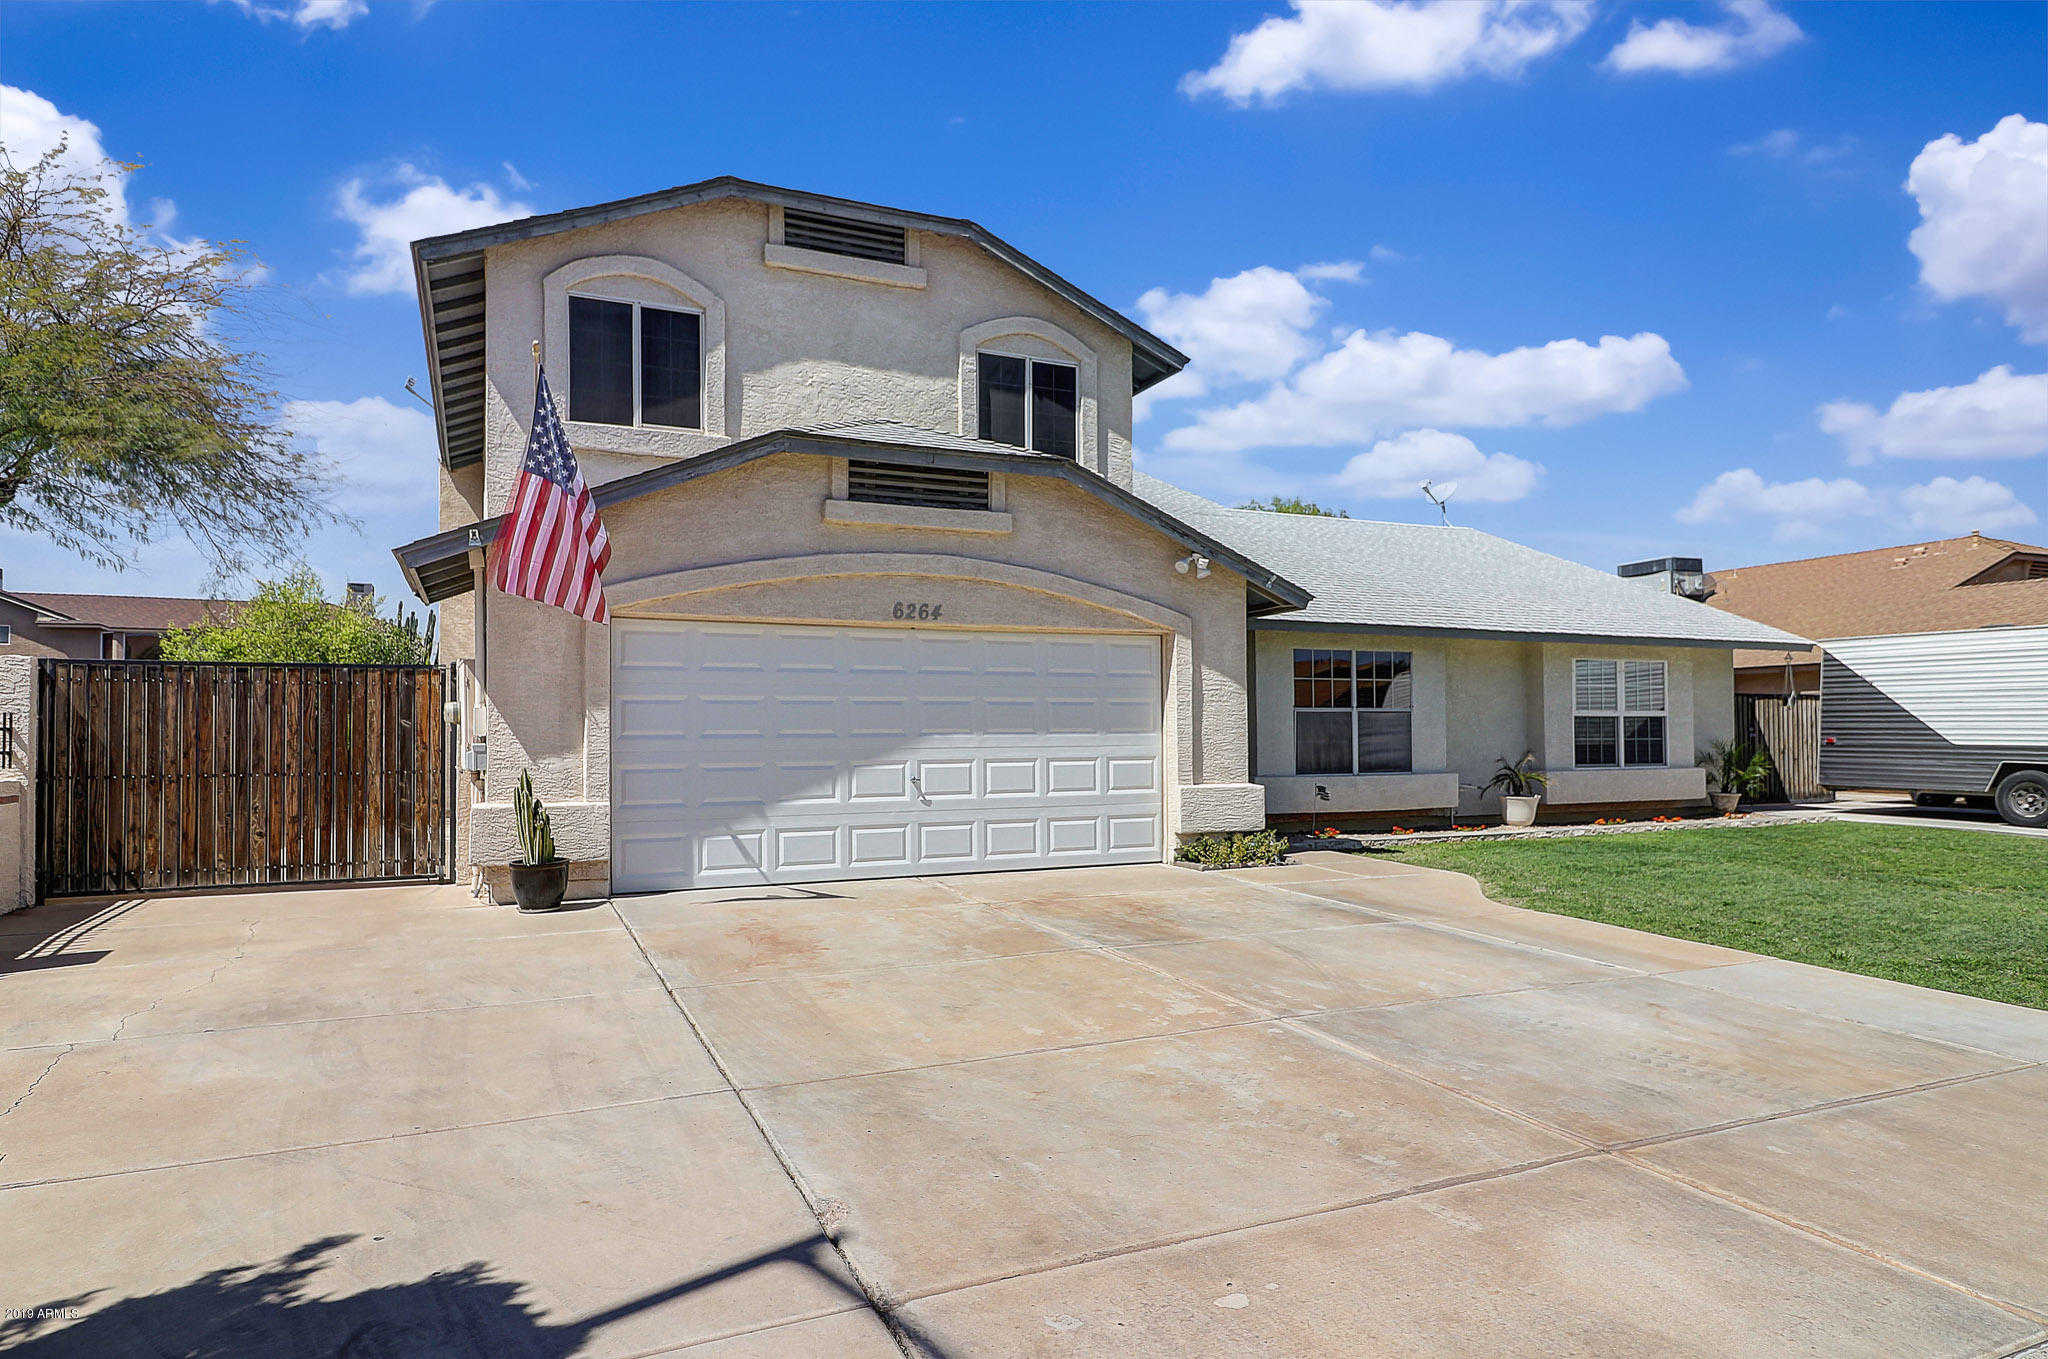 $315,000 - 4Br/4Ba - Home for Sale in La Buena Vida, Glendale